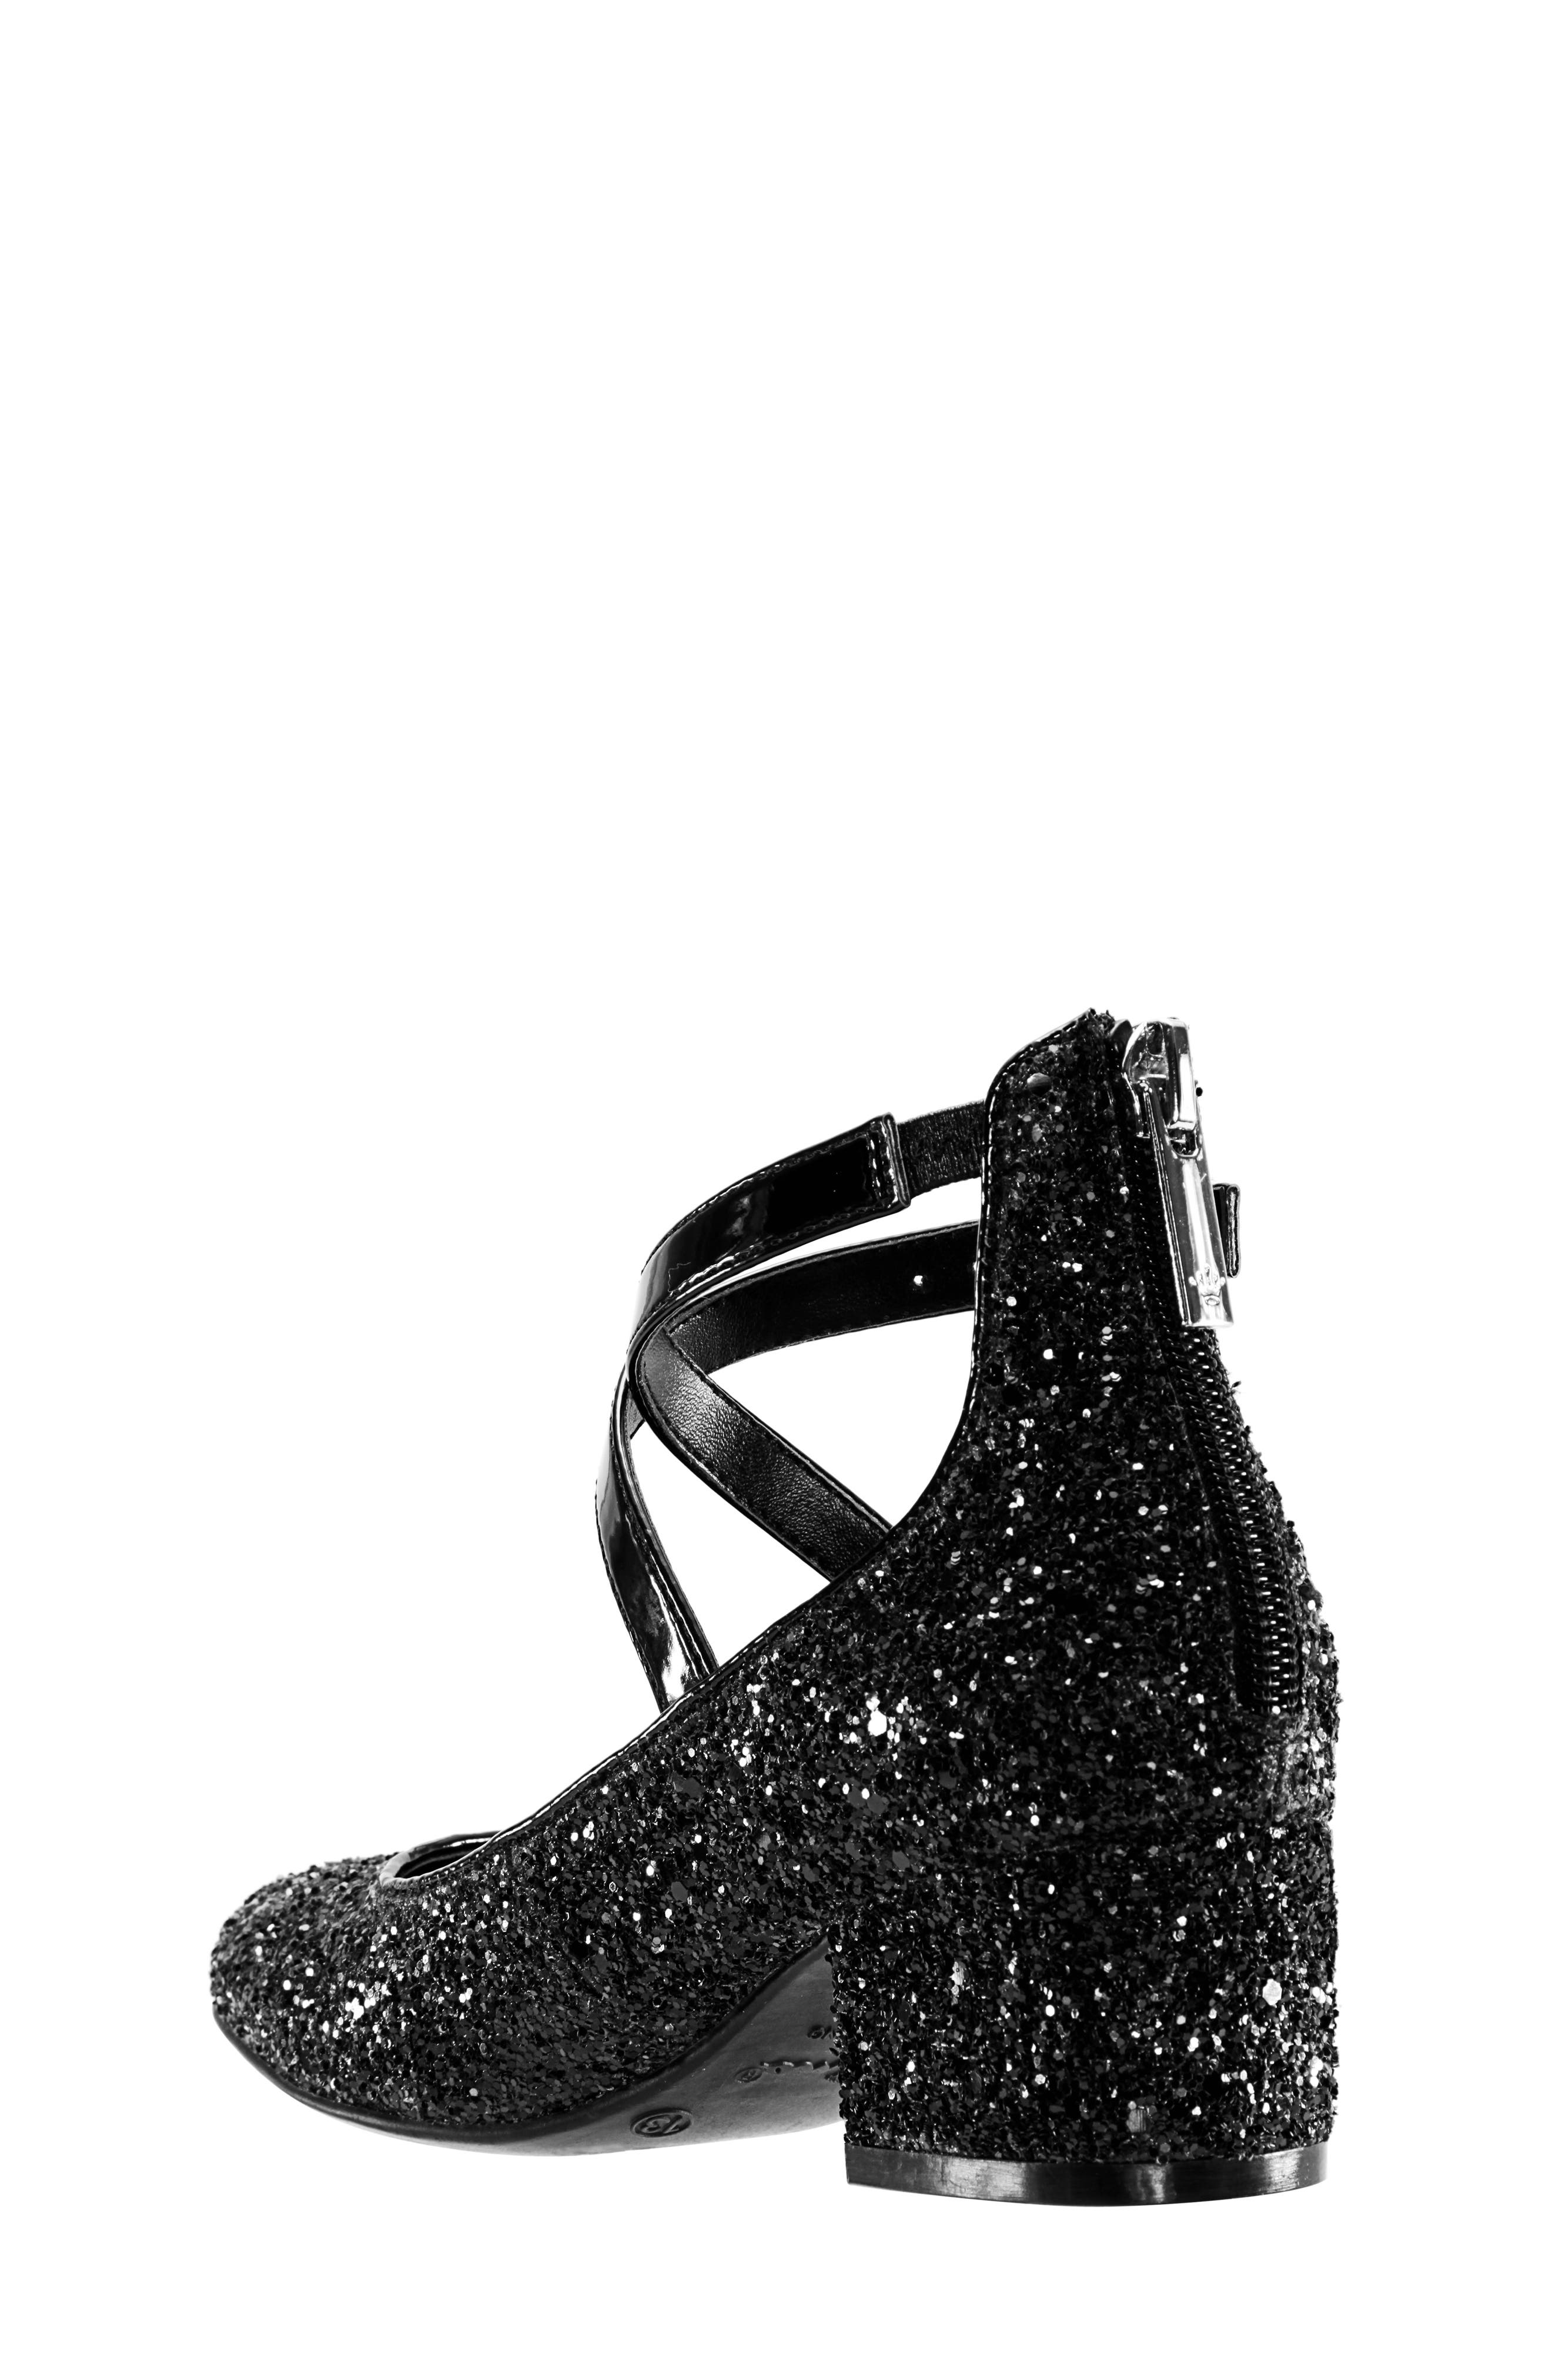 Deisy Glitter Block Heel Pump,                             Alternate thumbnail 2, color,                             BLACK CHUNK GLITTER/ PATENT